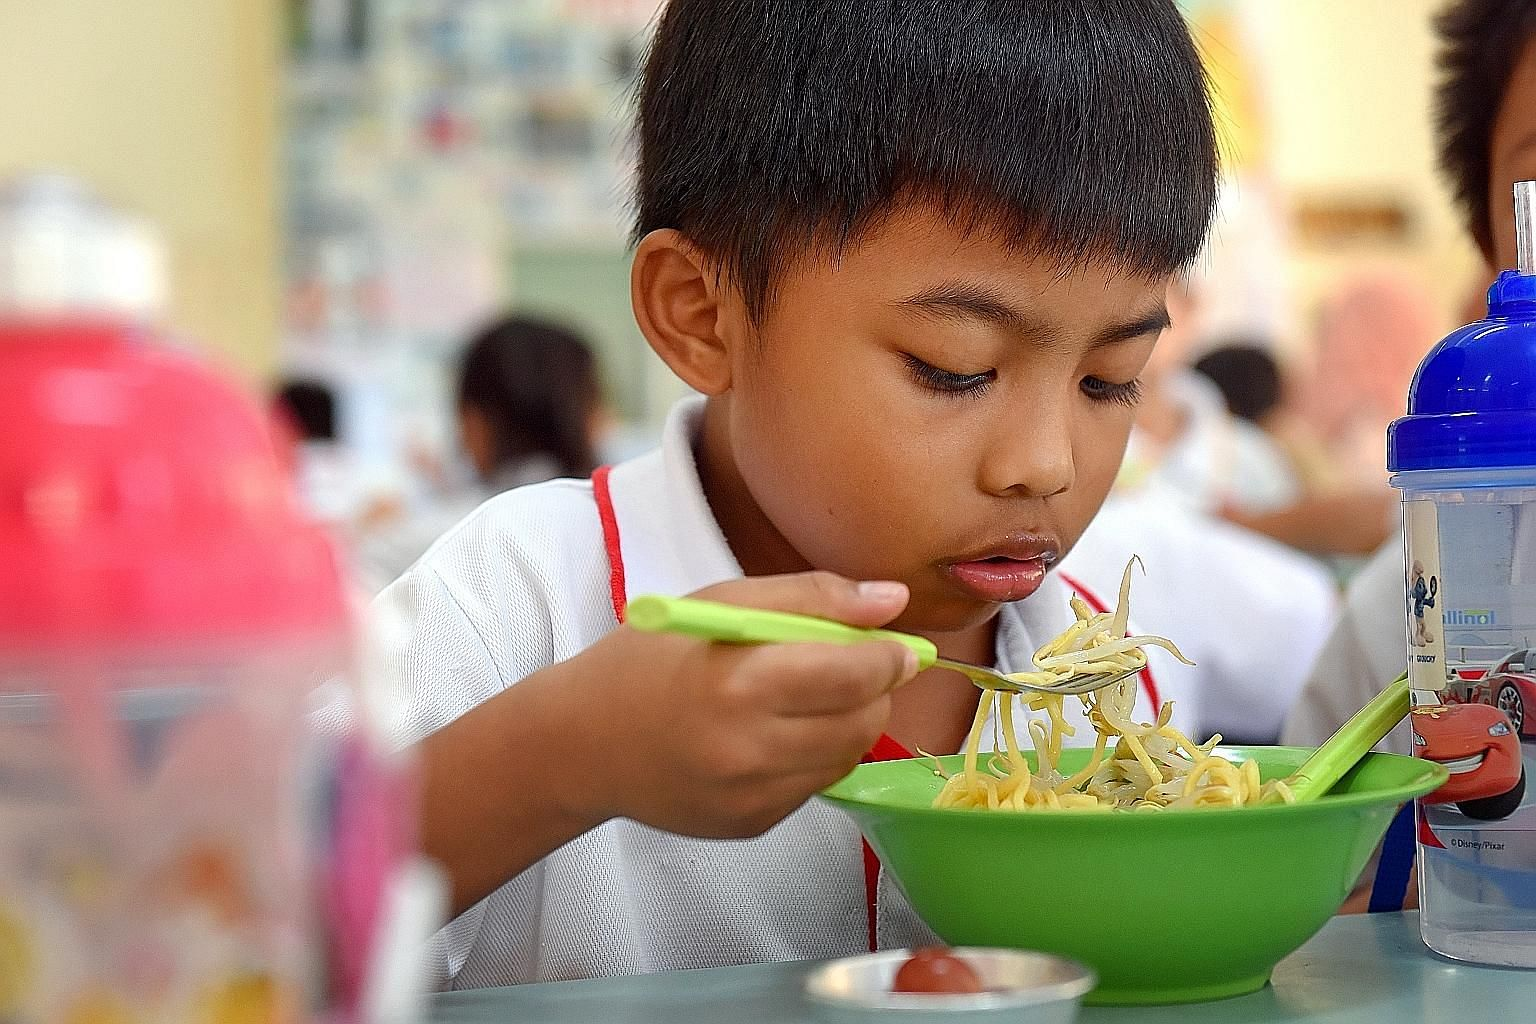 Bedok Green Primary 1 pupil Ziekriy Hannan Khairul Amin eating a bowl of noodles with bean sprouts. The school makes sure that healthy dishes look similar to the original versions, and limits the sale of snacks.